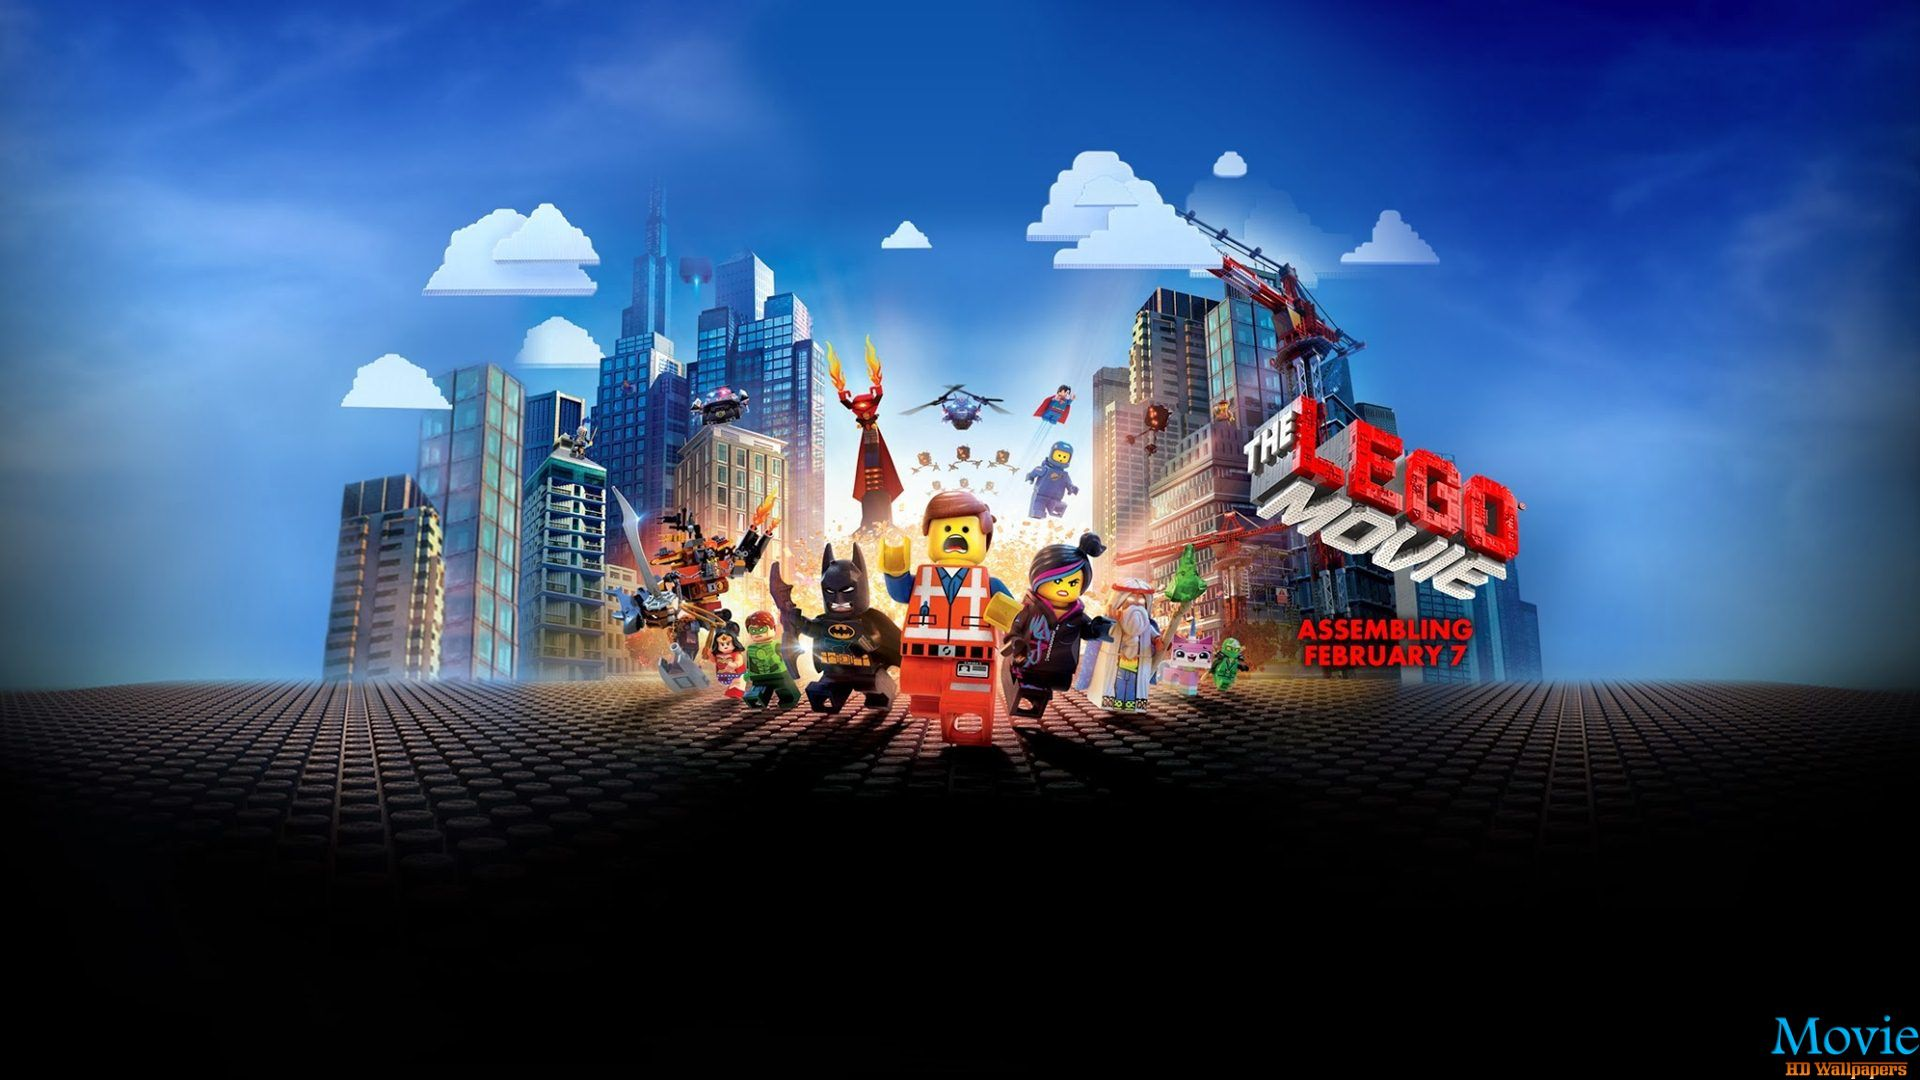 The lego movie 2014 movie hd wallpapers - Lego wallpaper ...